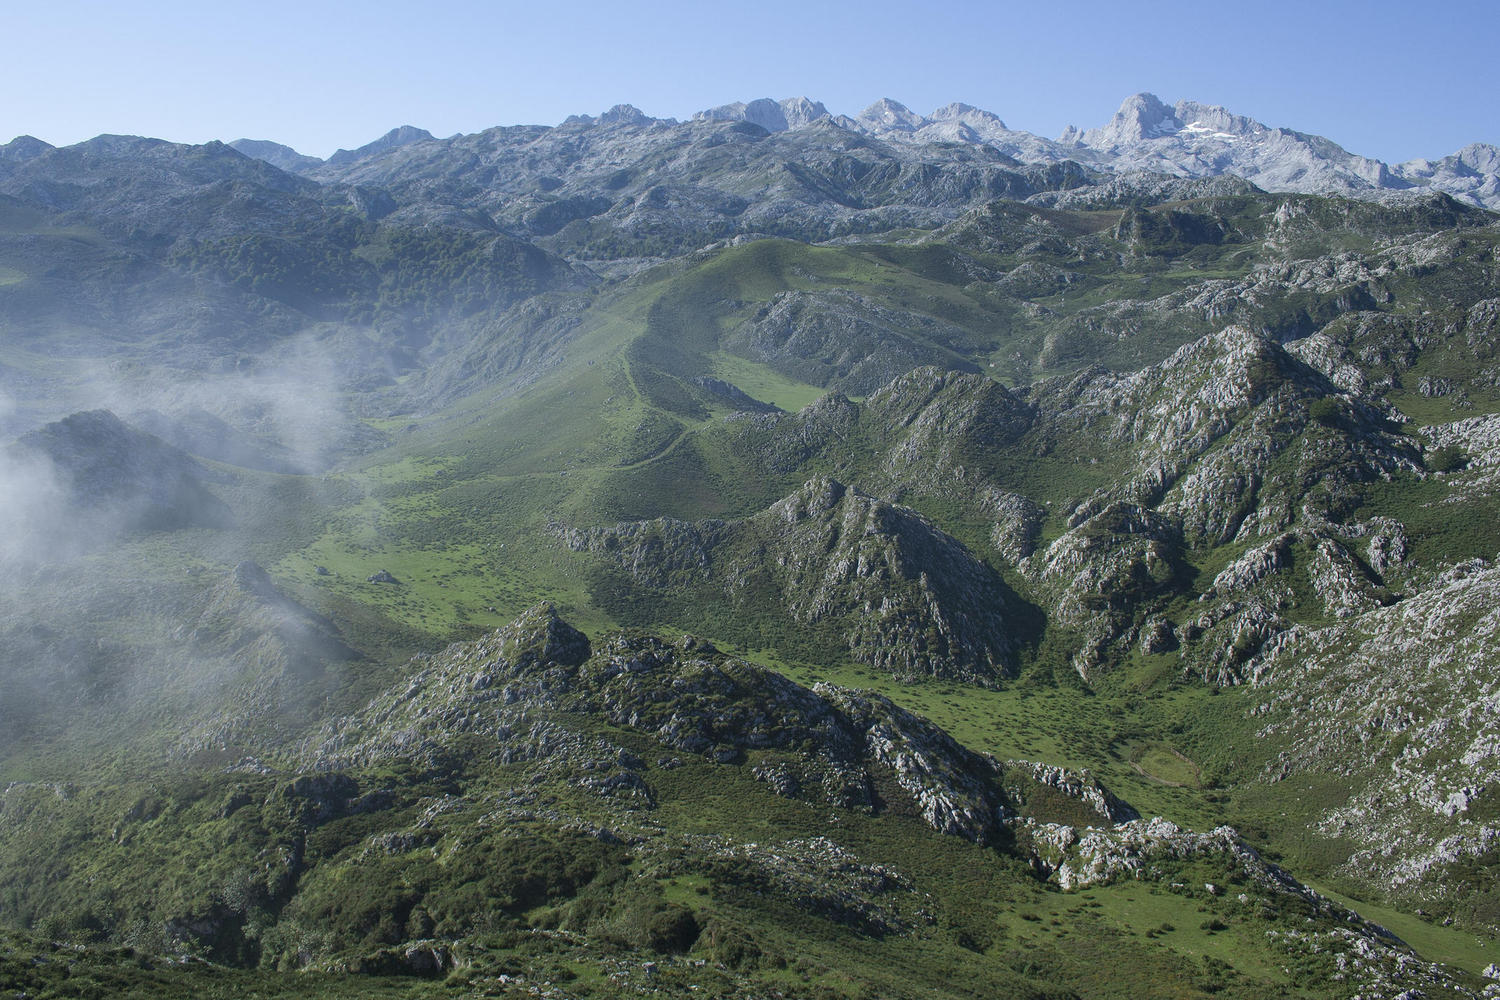 The high pastures of the Picos are home to shepherds and flocks in the summer months.